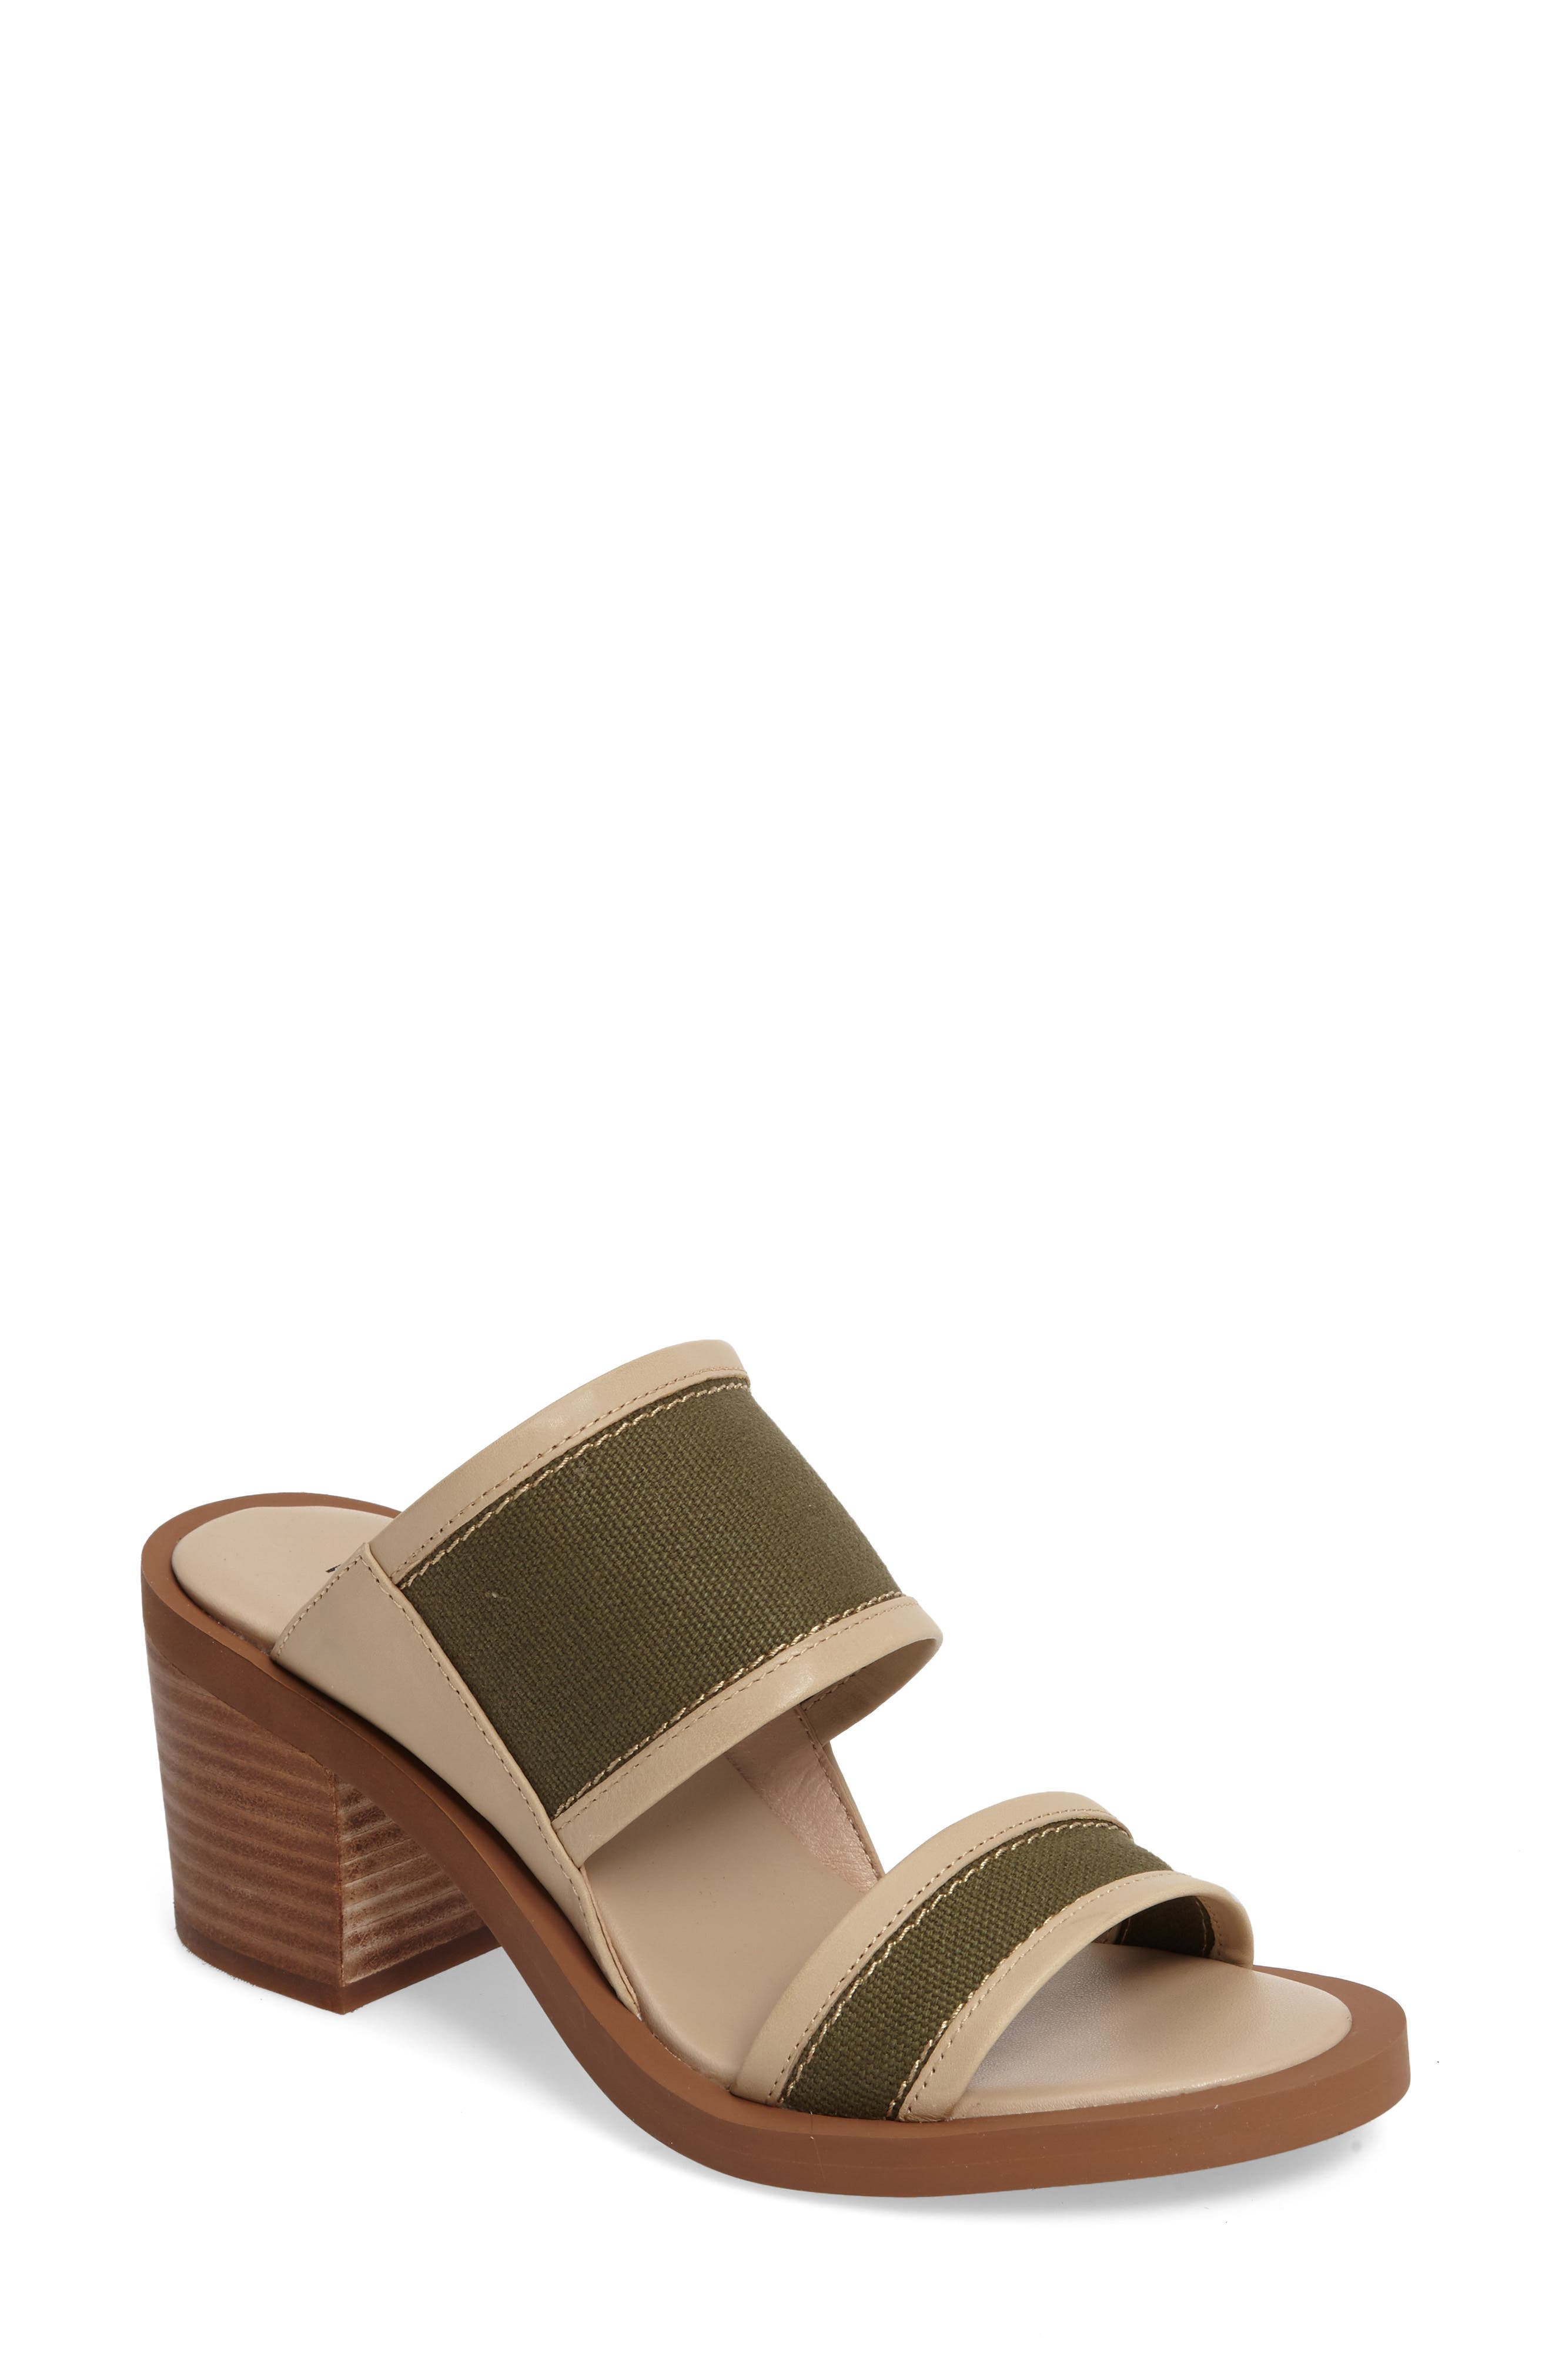 Kelsi Dagger Brooklyn Lee Slide Sandal (Women)